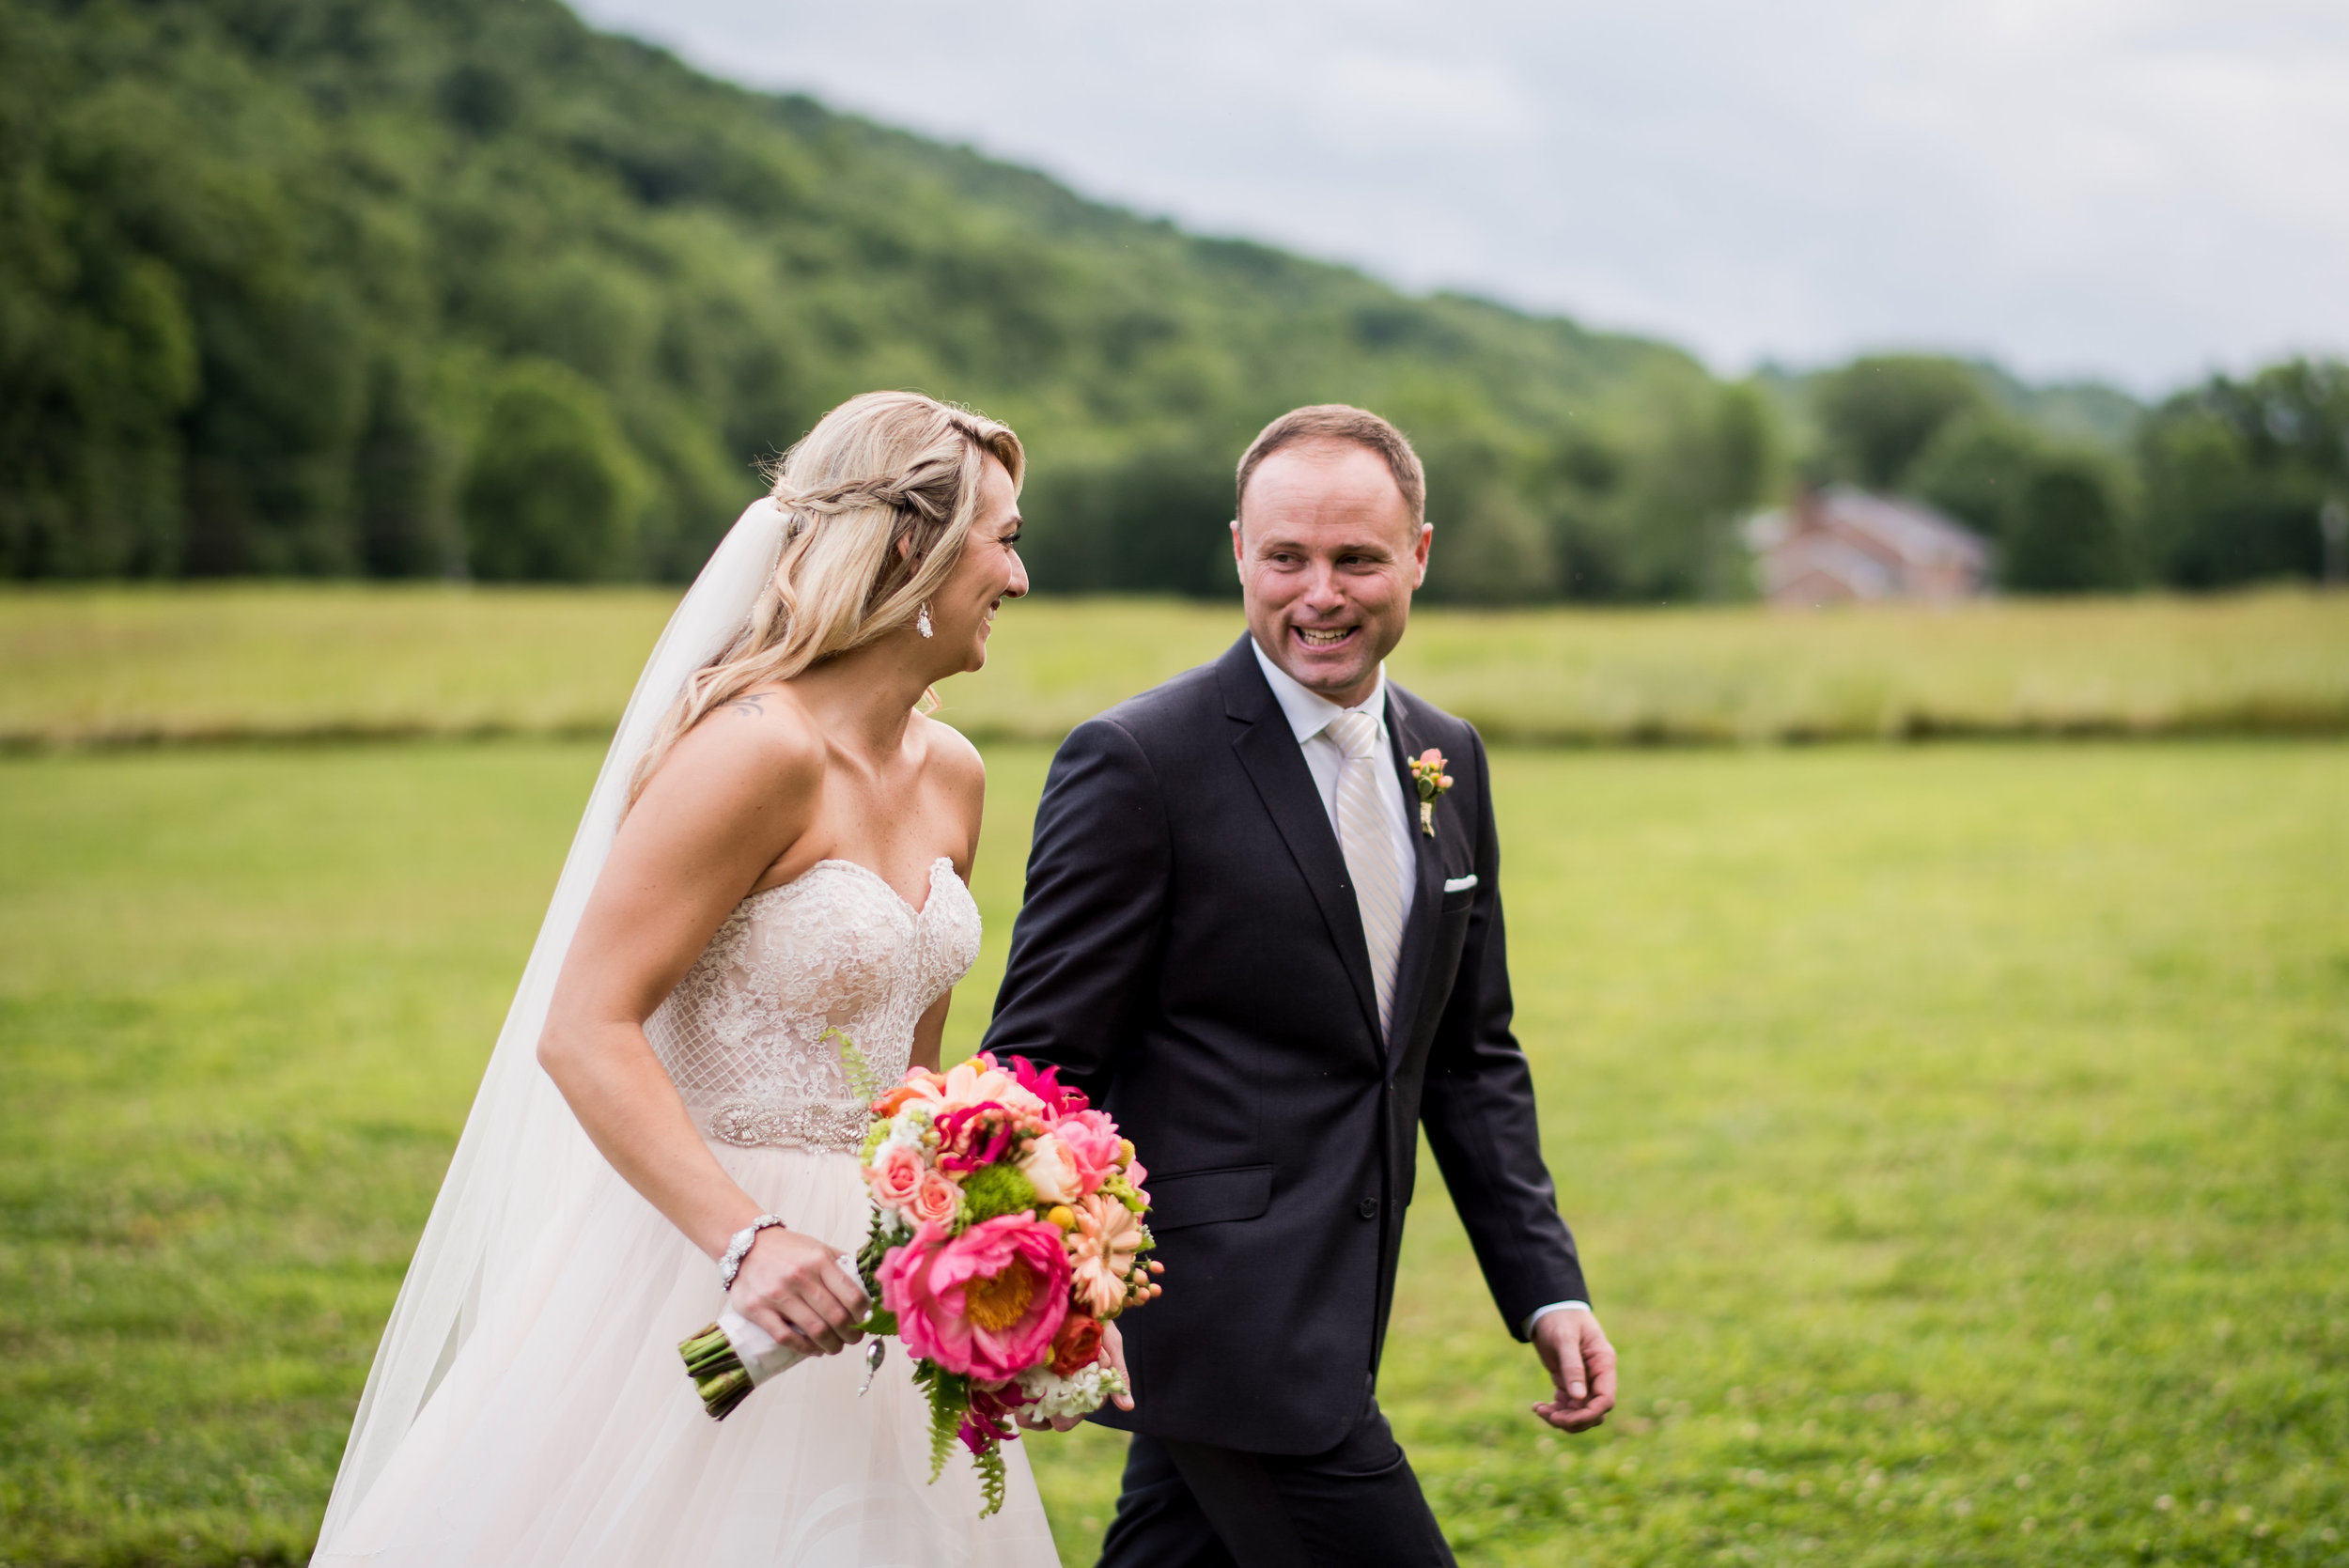 Nashville Wedding Photographers Drakewood Farm-754.jpg